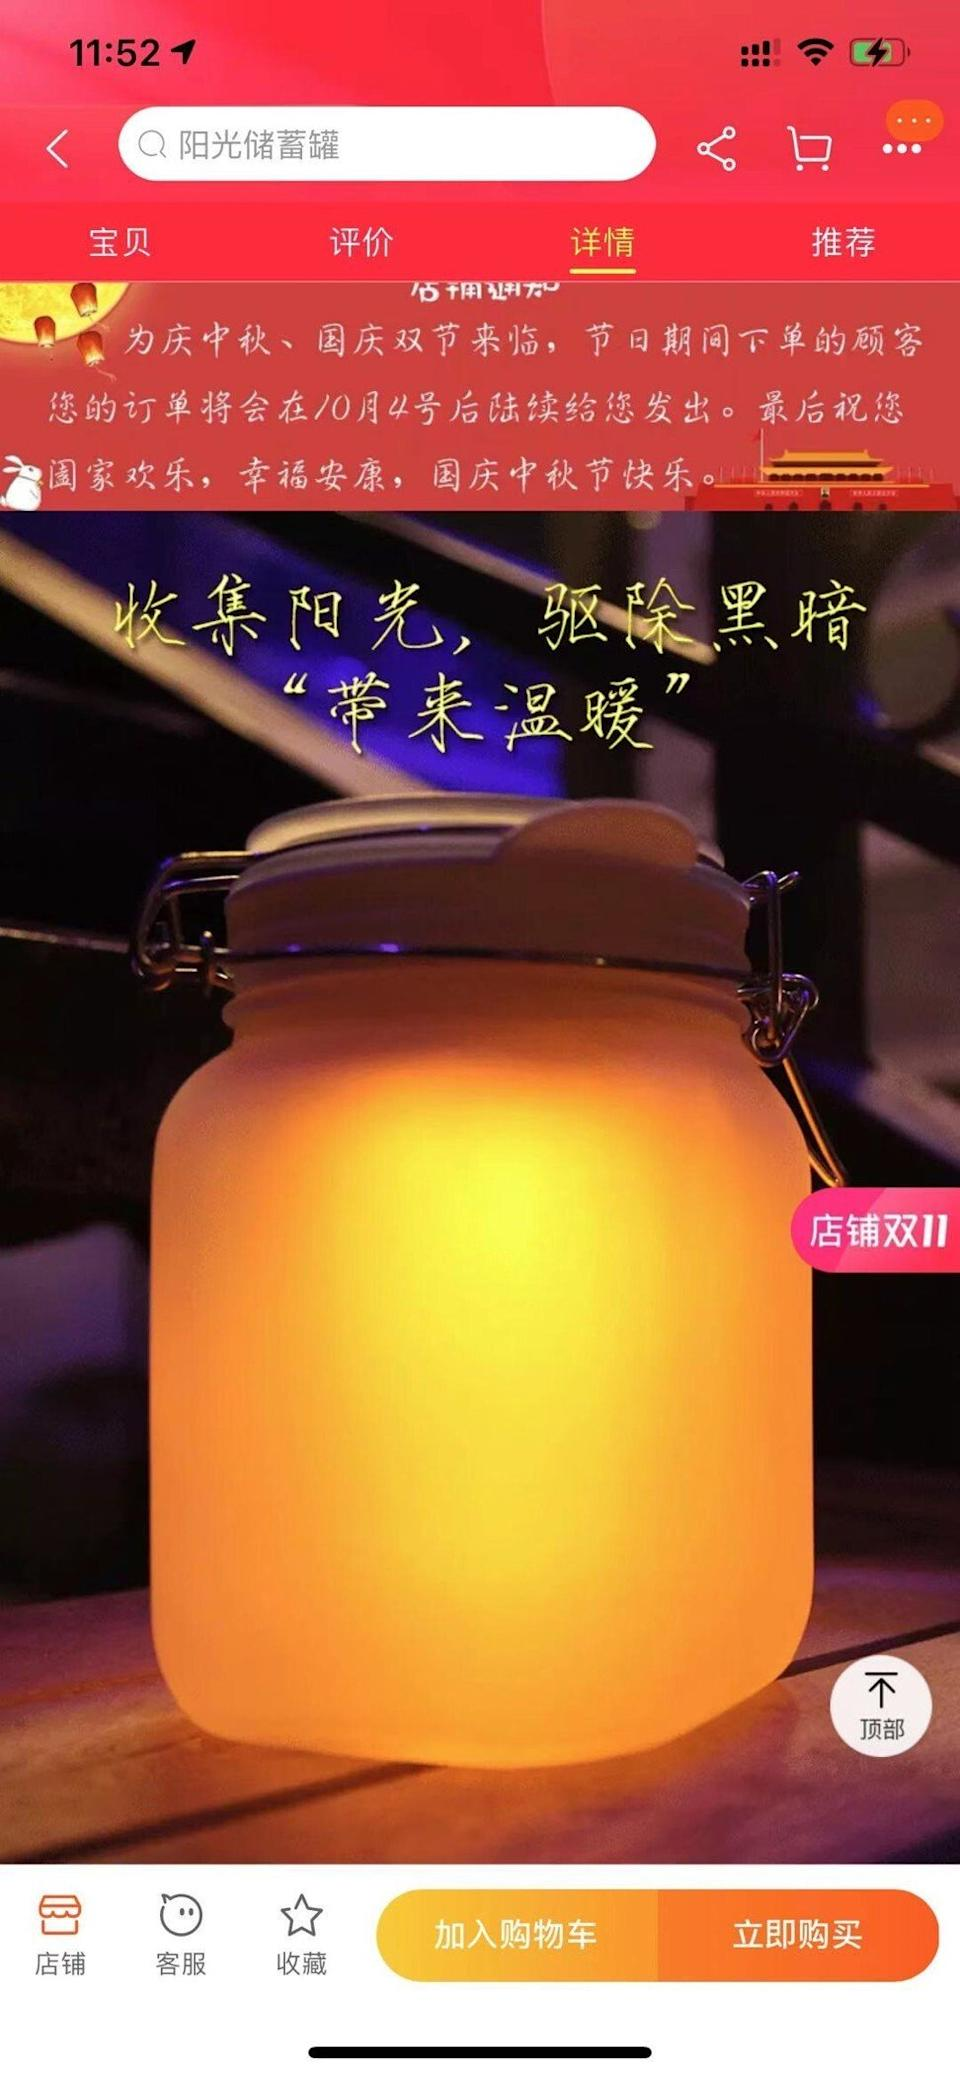 A screen shot of a jar of sunlight sold online on Singles' Day in China. Photo: courtesy of Tmall